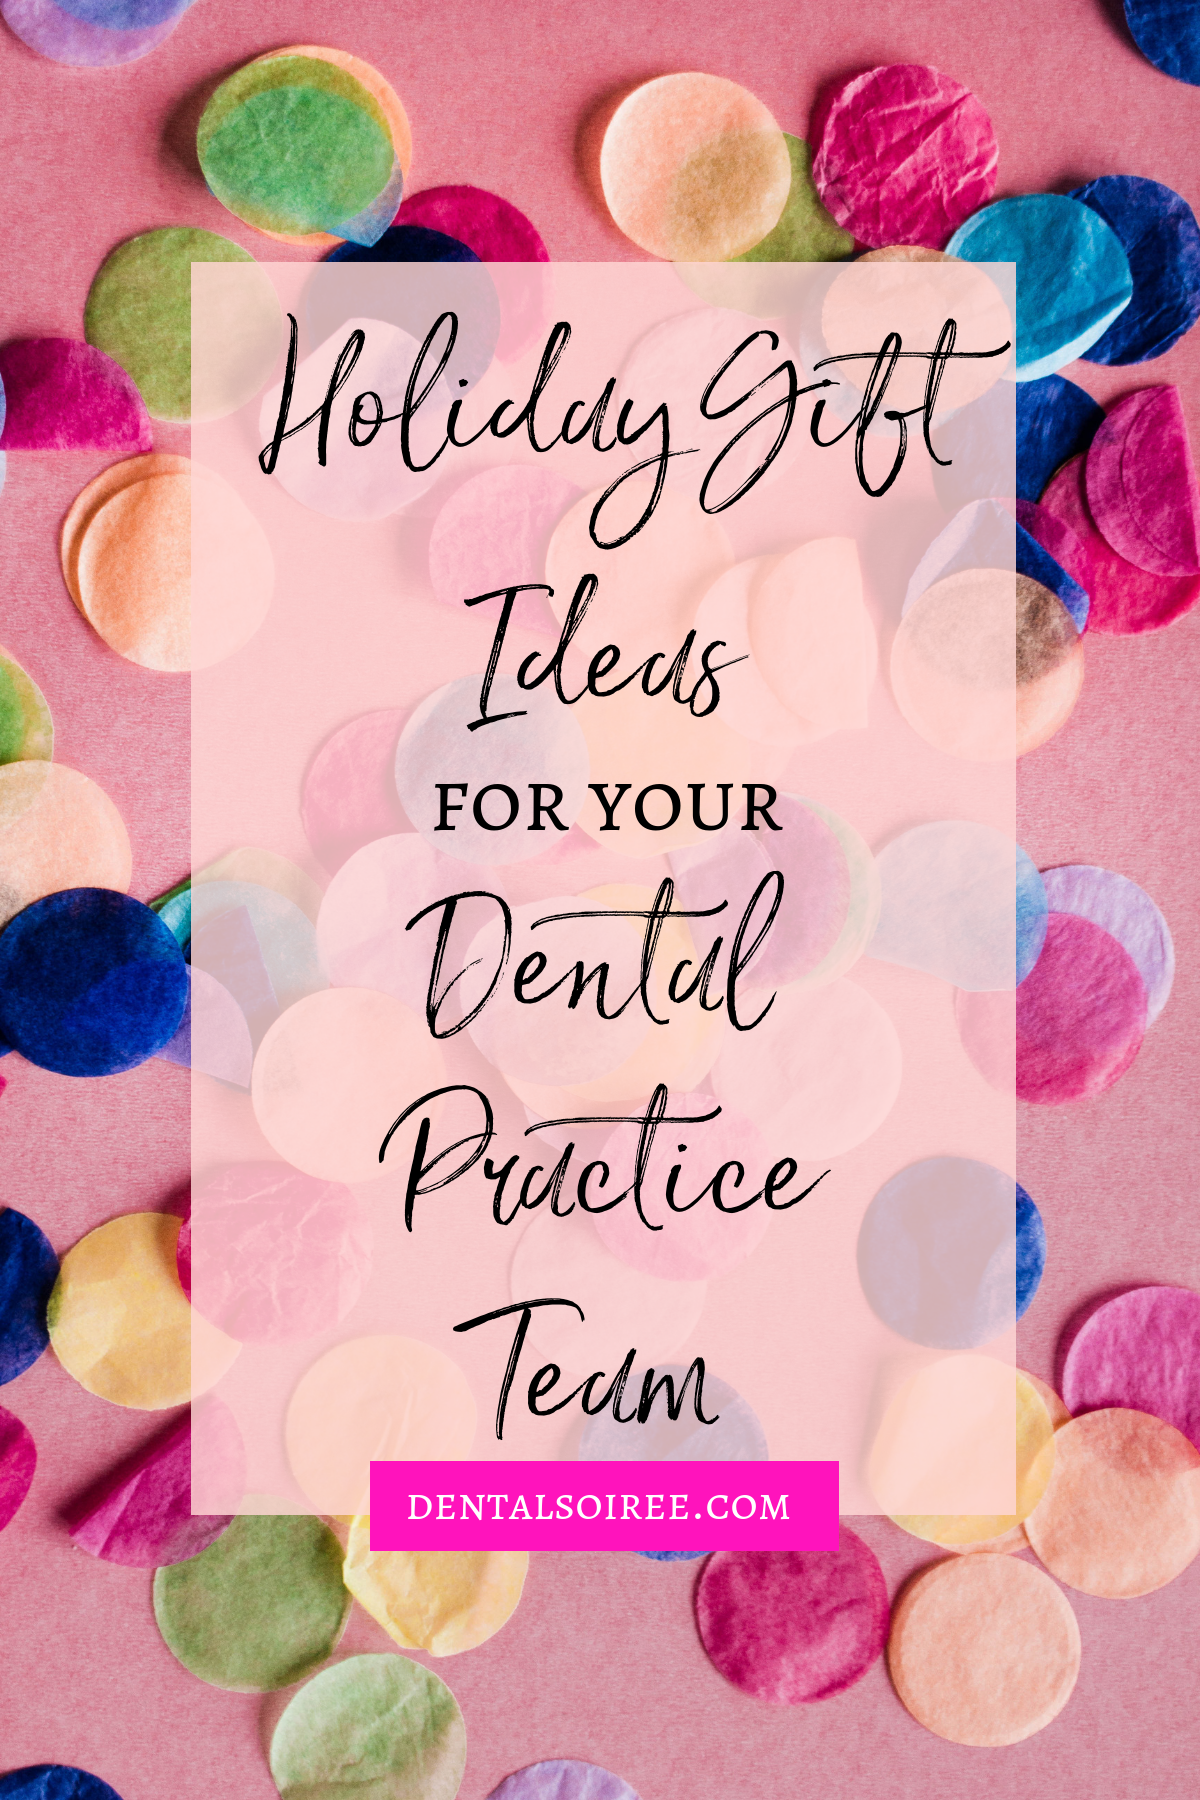 Gift Ideas for Your Dental Practice Team